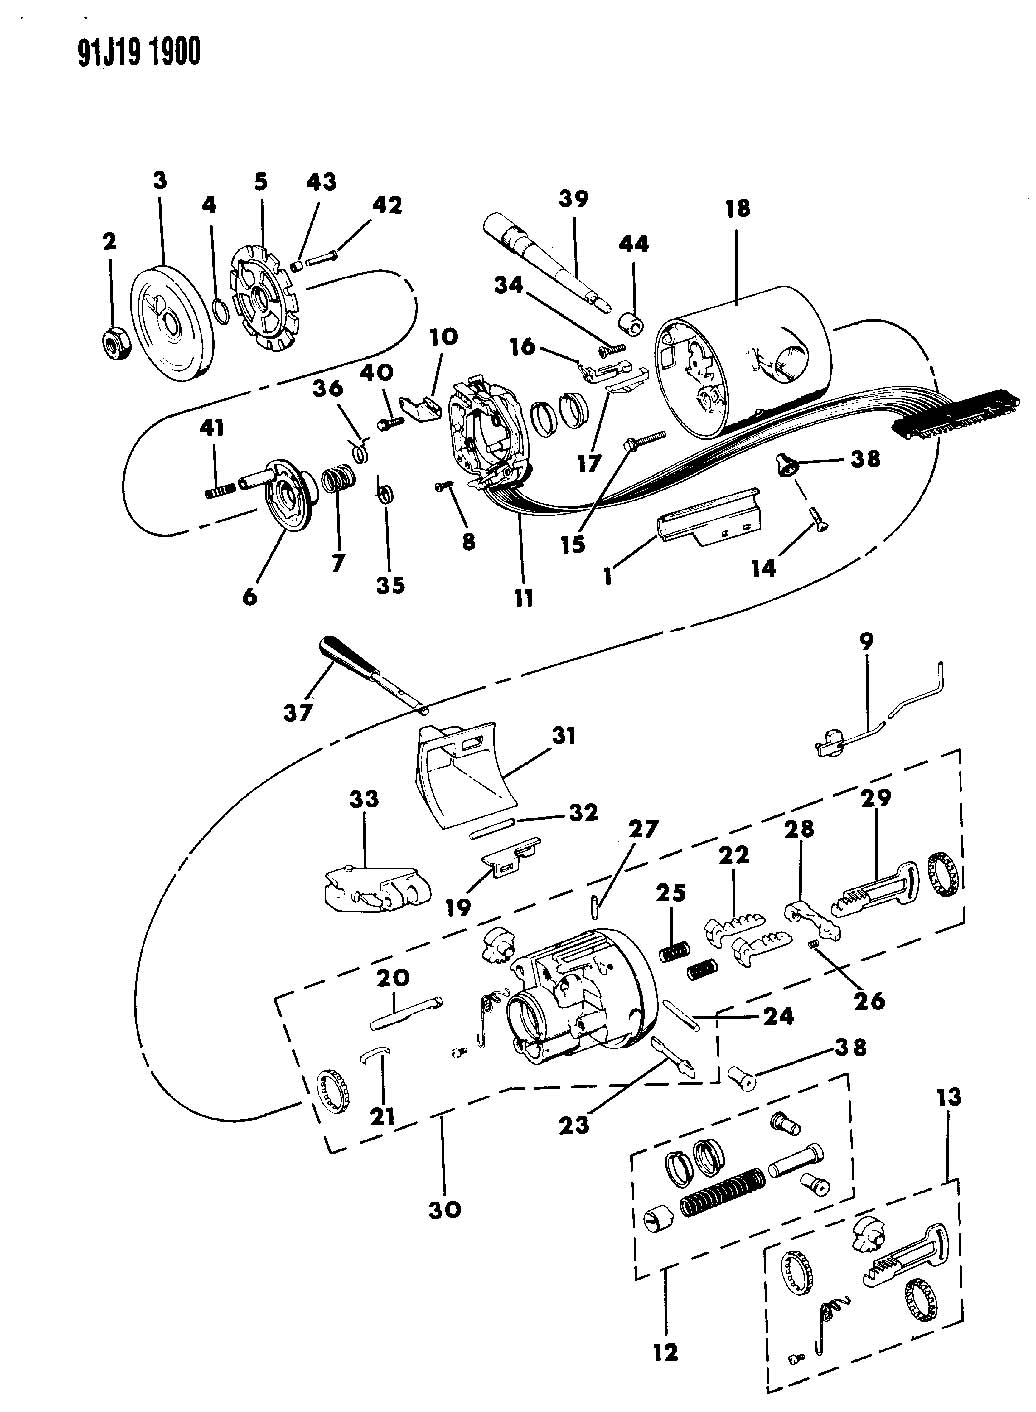 Wiring Diagrams Bayliner Capri Fuse Box Wiring